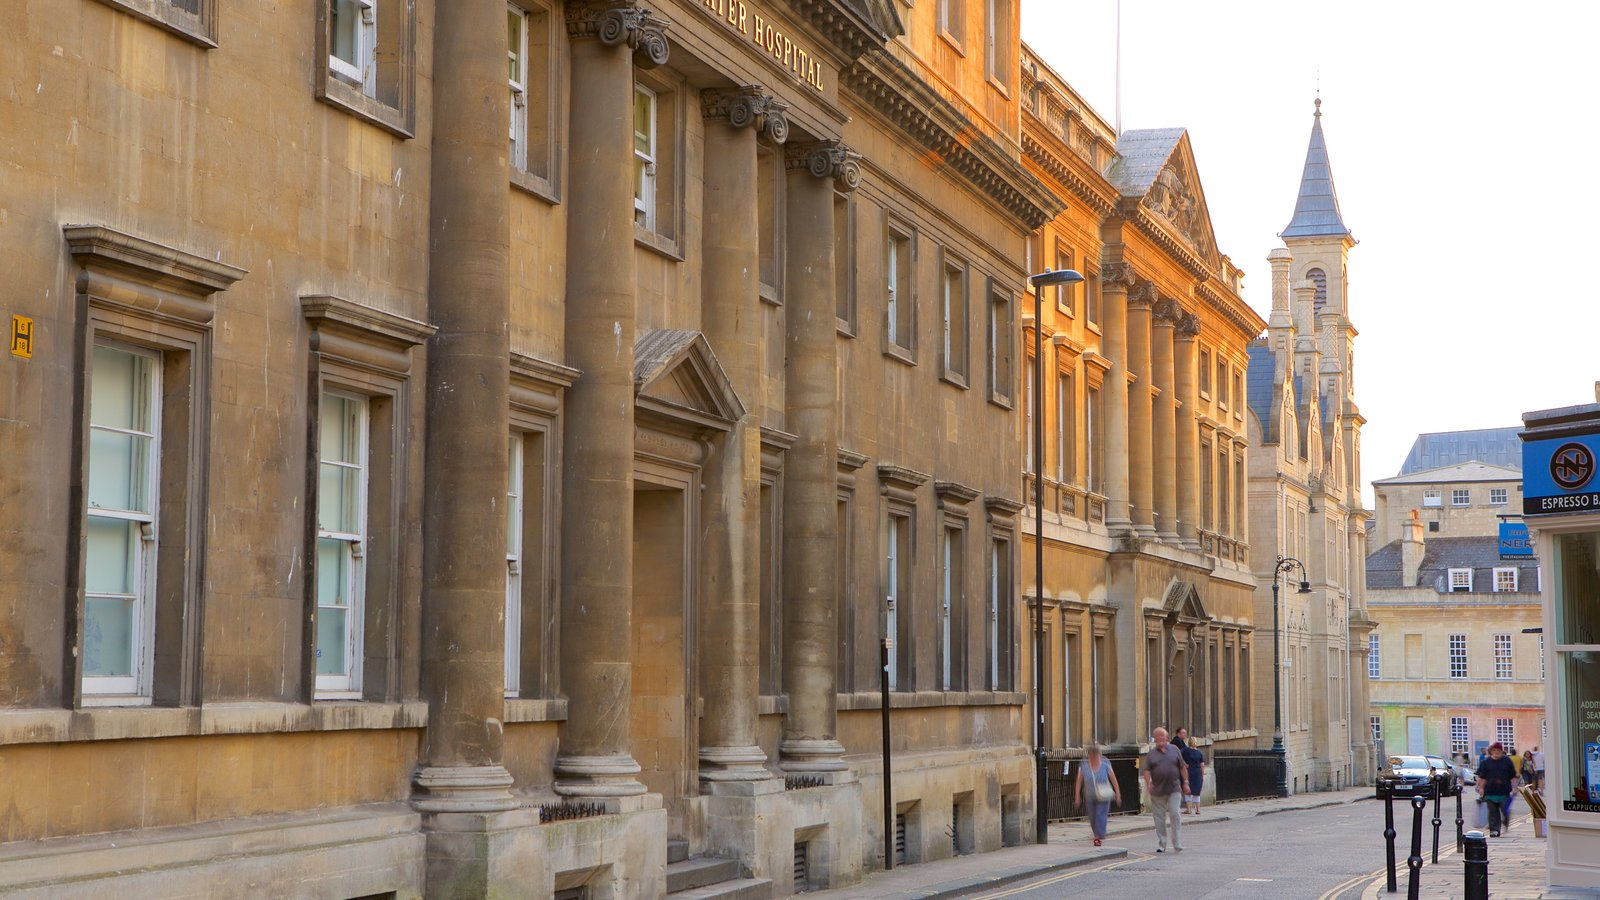 Bath showing heritage architecture, an administrative buidling and a city